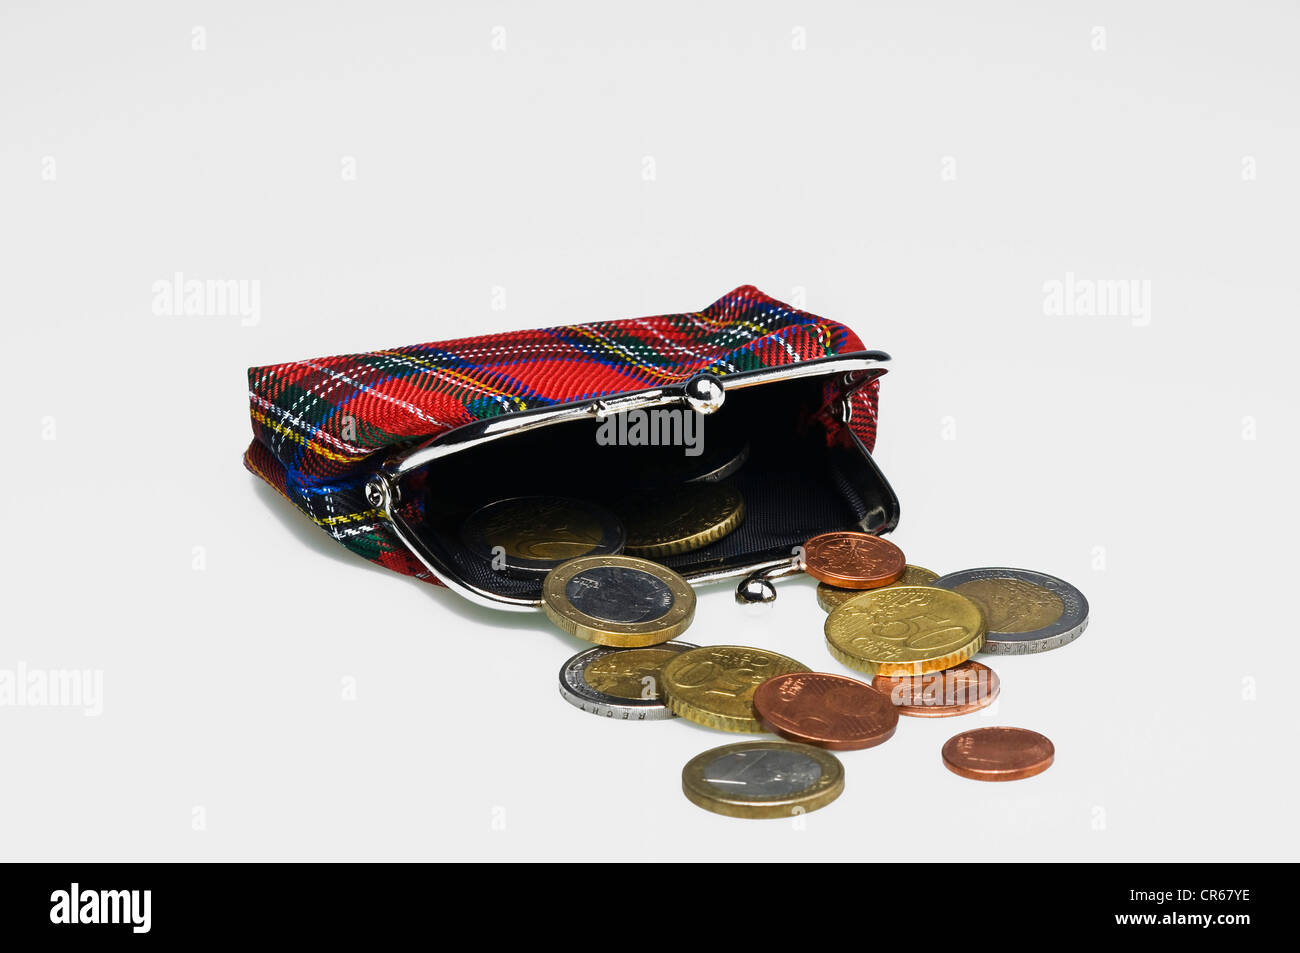 Wallet or purse with Scottish tartan pattern and euro coins, symbolic image for saving, avarice - Stock Image